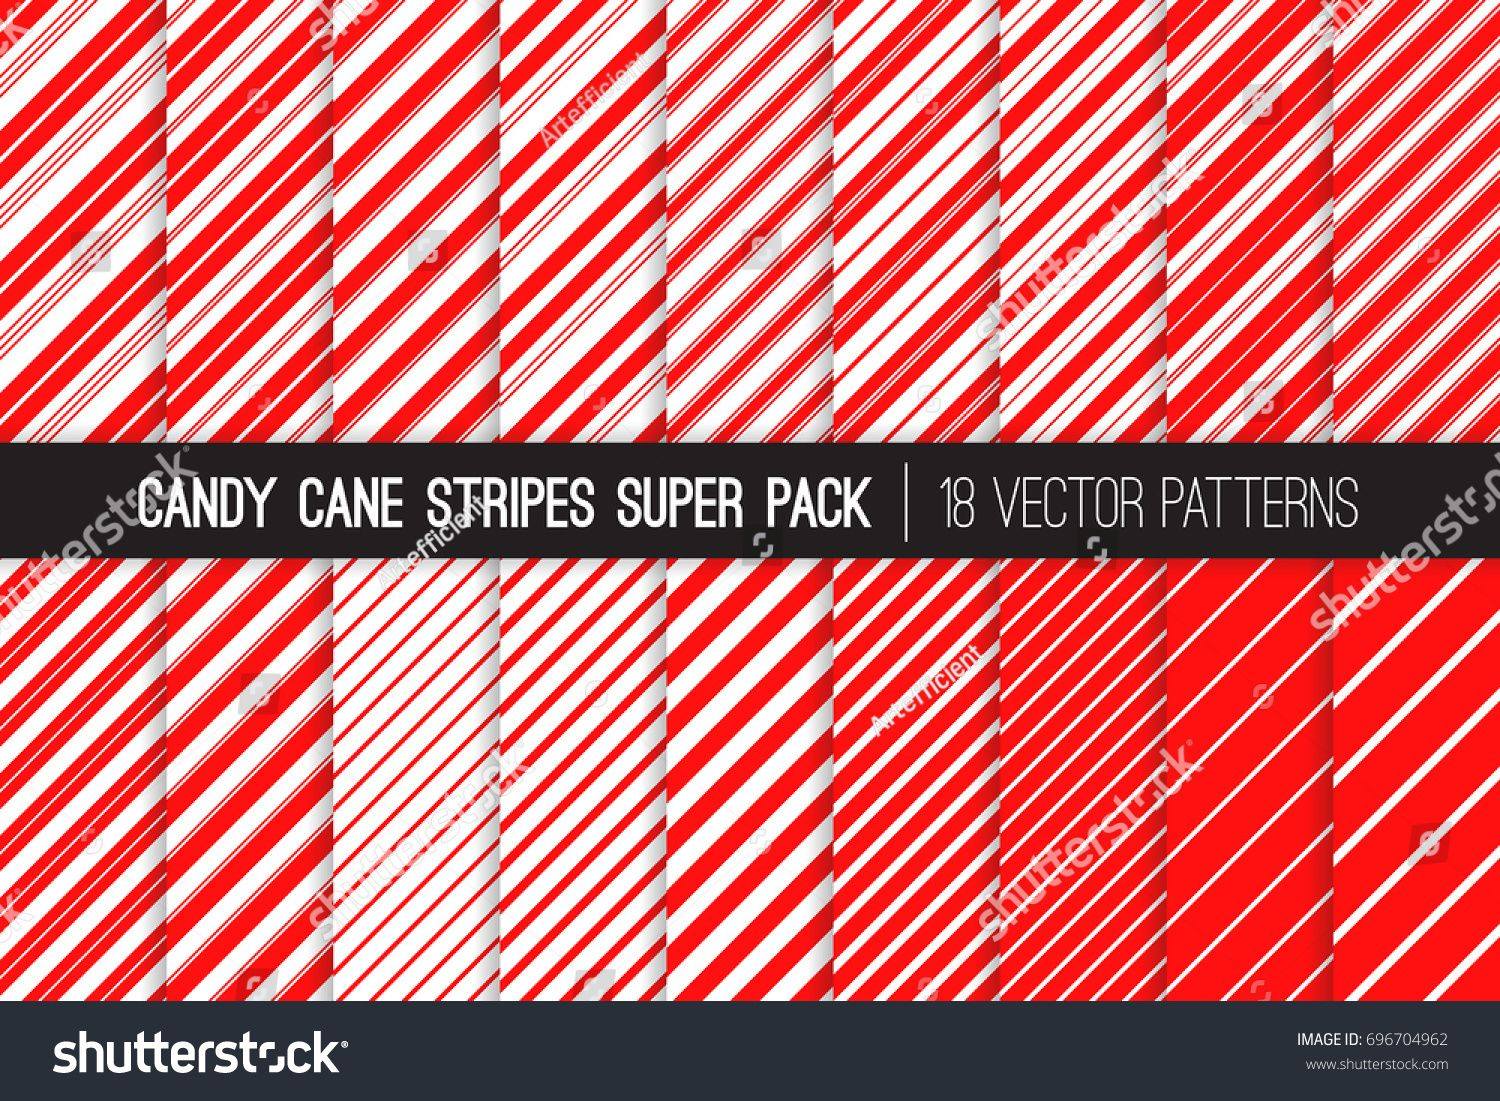 Super Pack of Christmas Candy Cane Stripes Vector Patterns